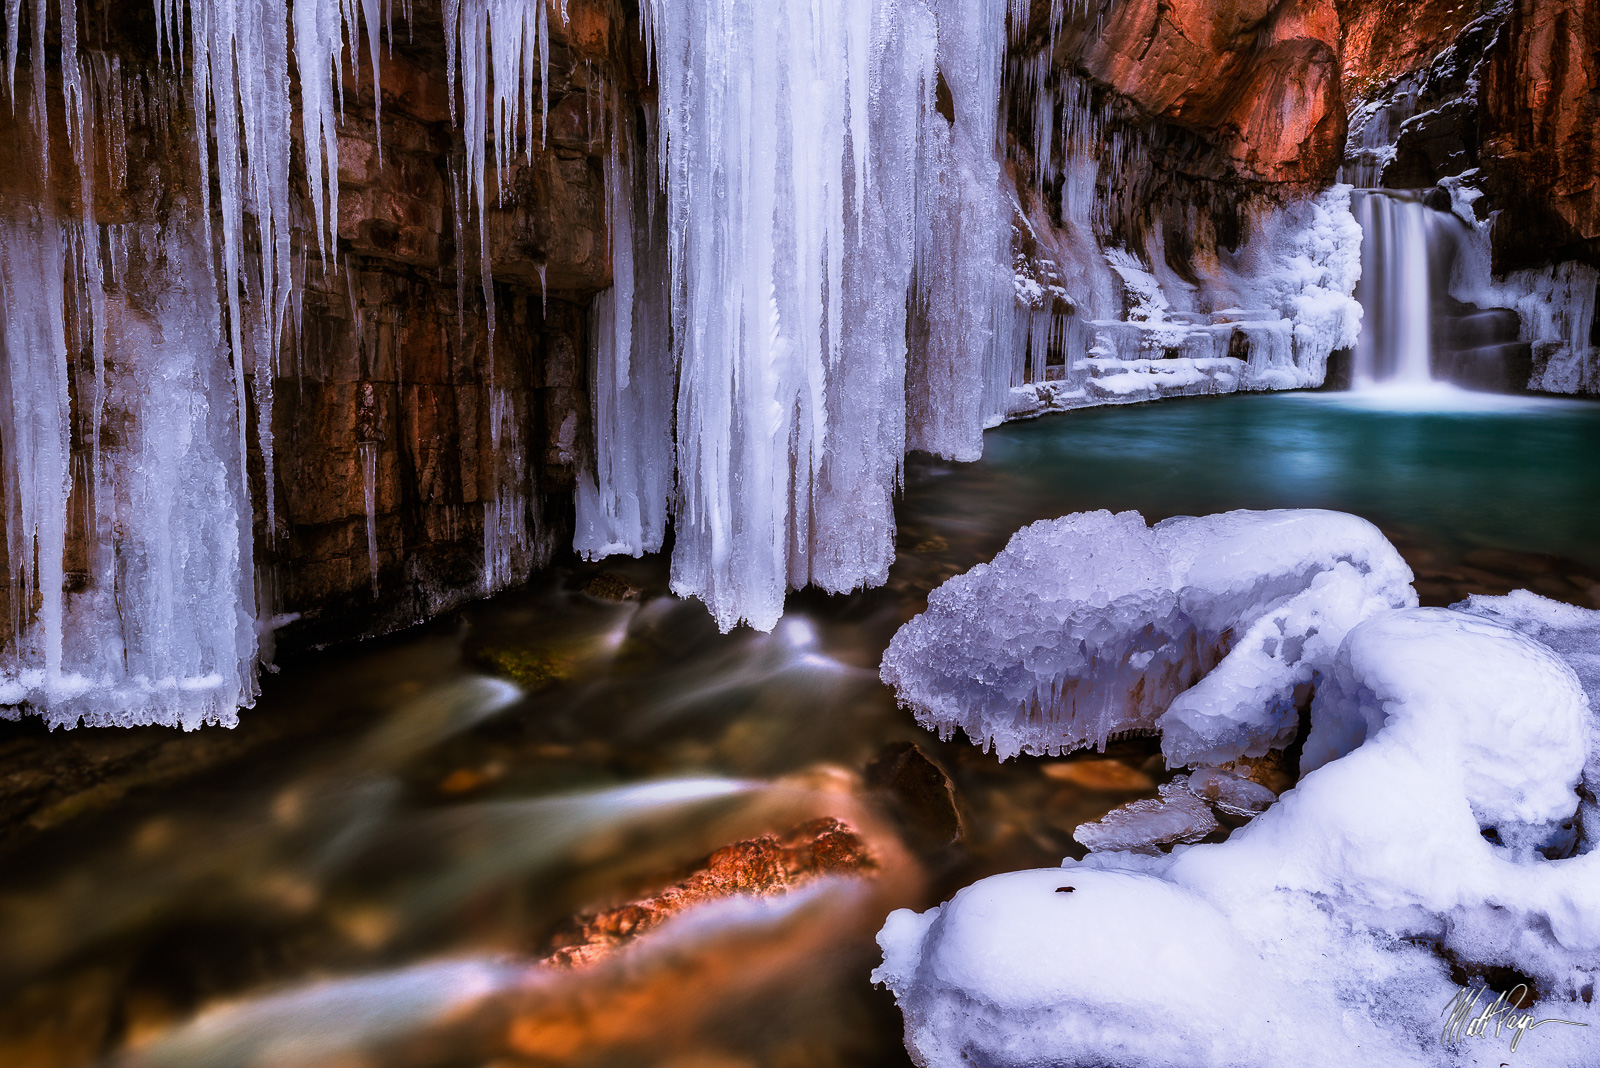 On my first week back in Colorado I visited this amazing waterfall on Cascade Creek showcasing amazing ice formations and a fantastic...